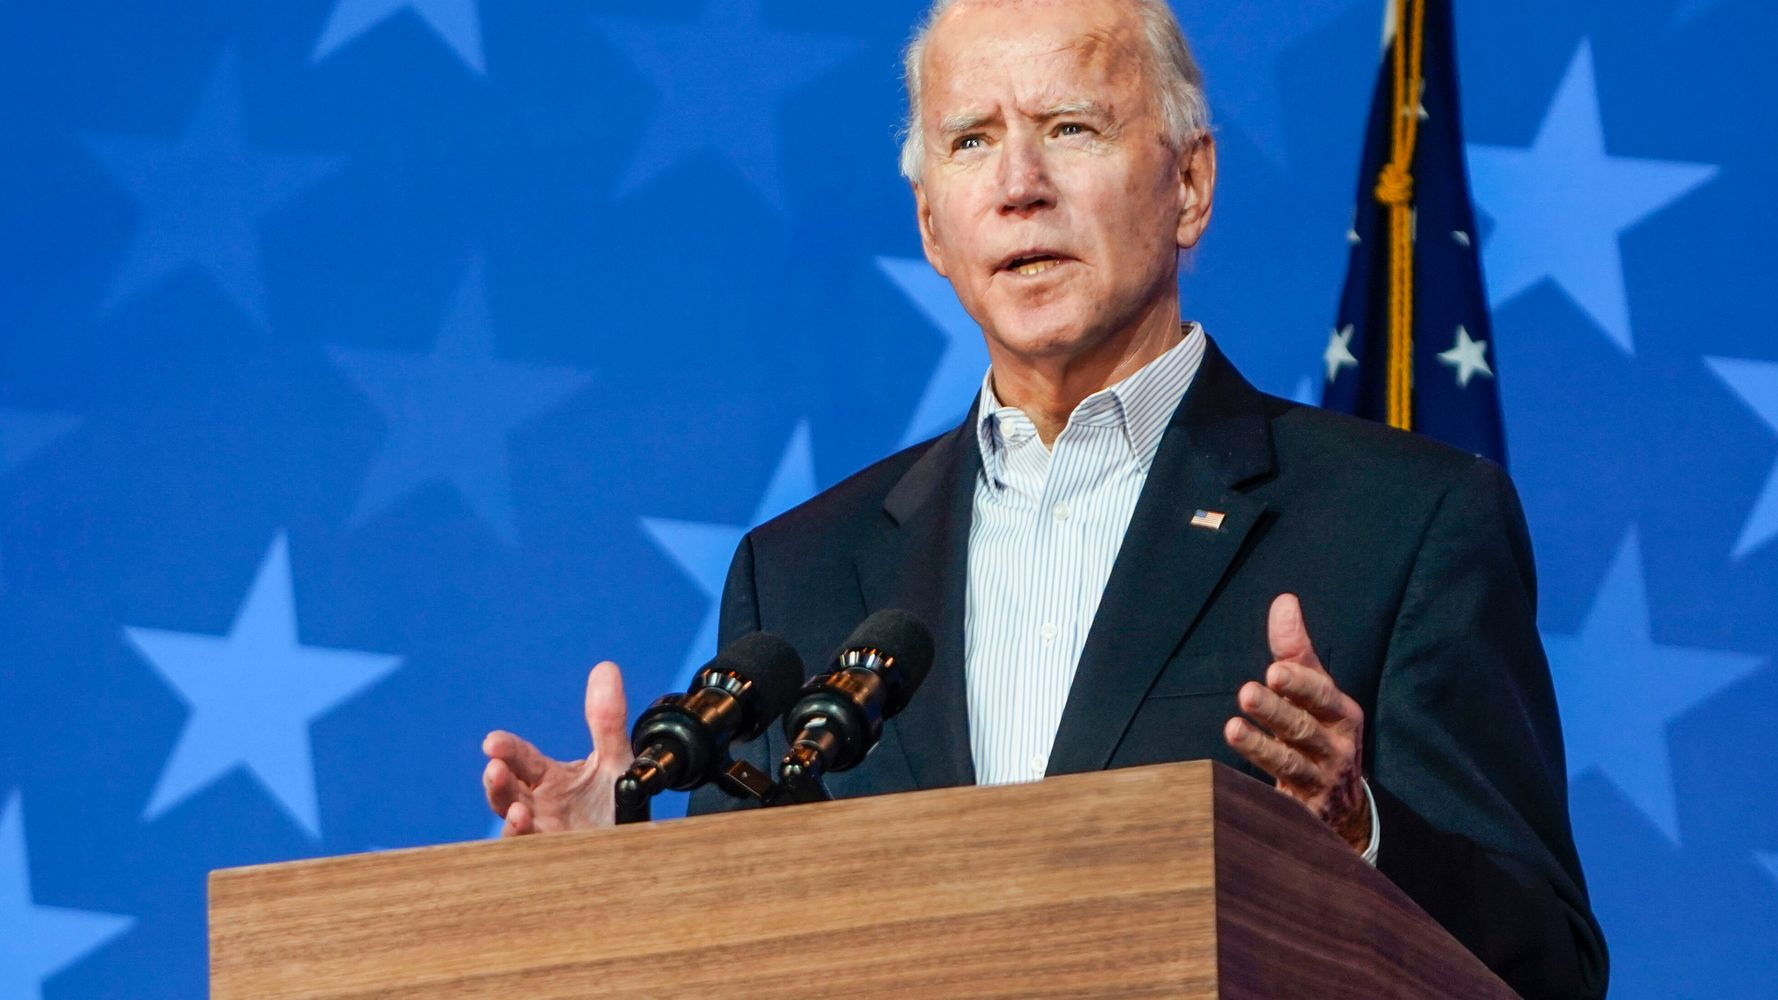 A Biden Administration Could Unilaterally Undo A Bunch Of Safety Net Cuts